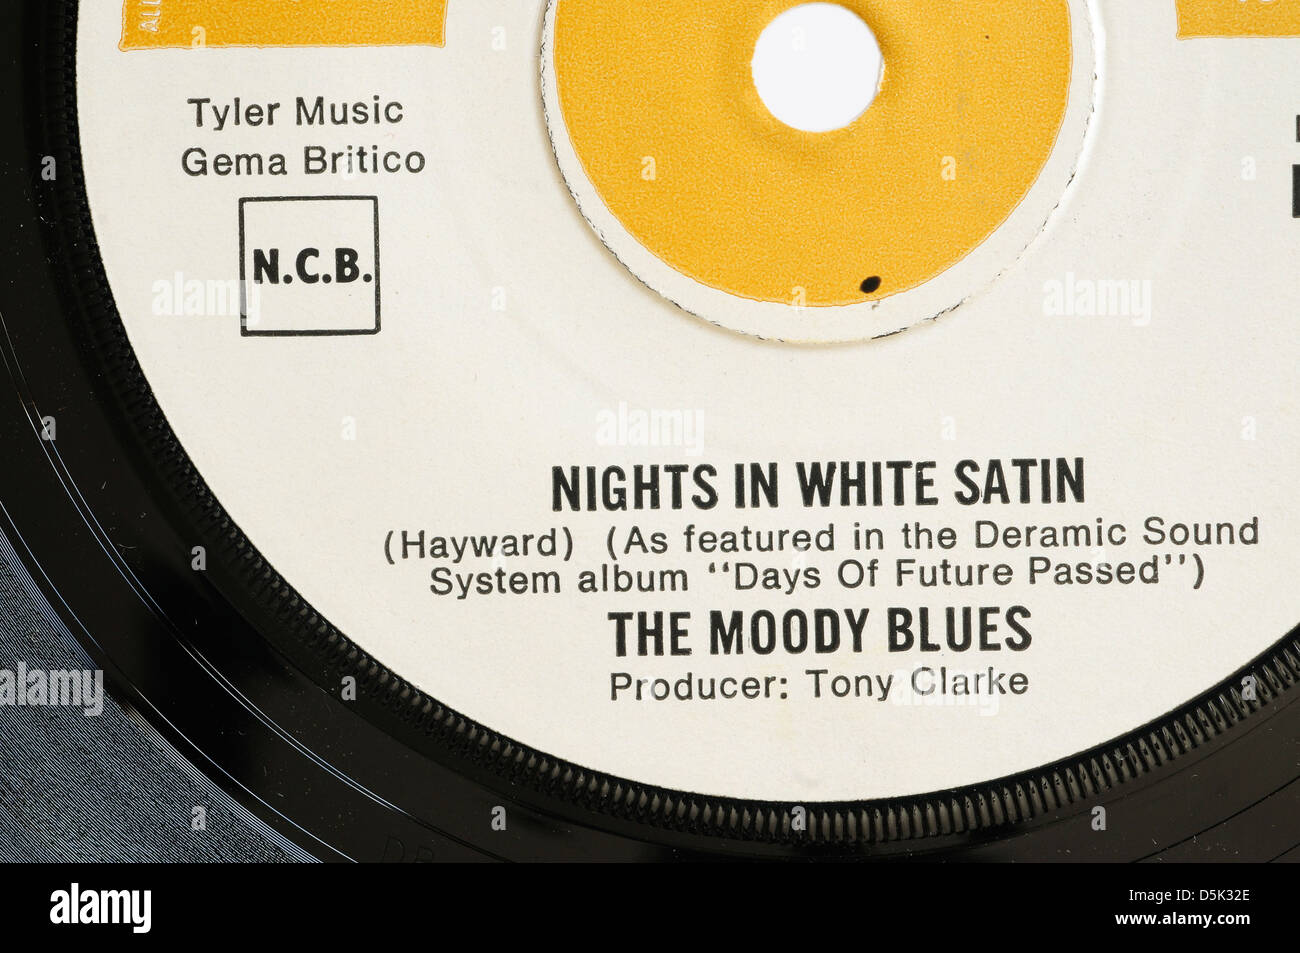 The Moody Blues Nights in White Satin 7' single record label - Stock Image